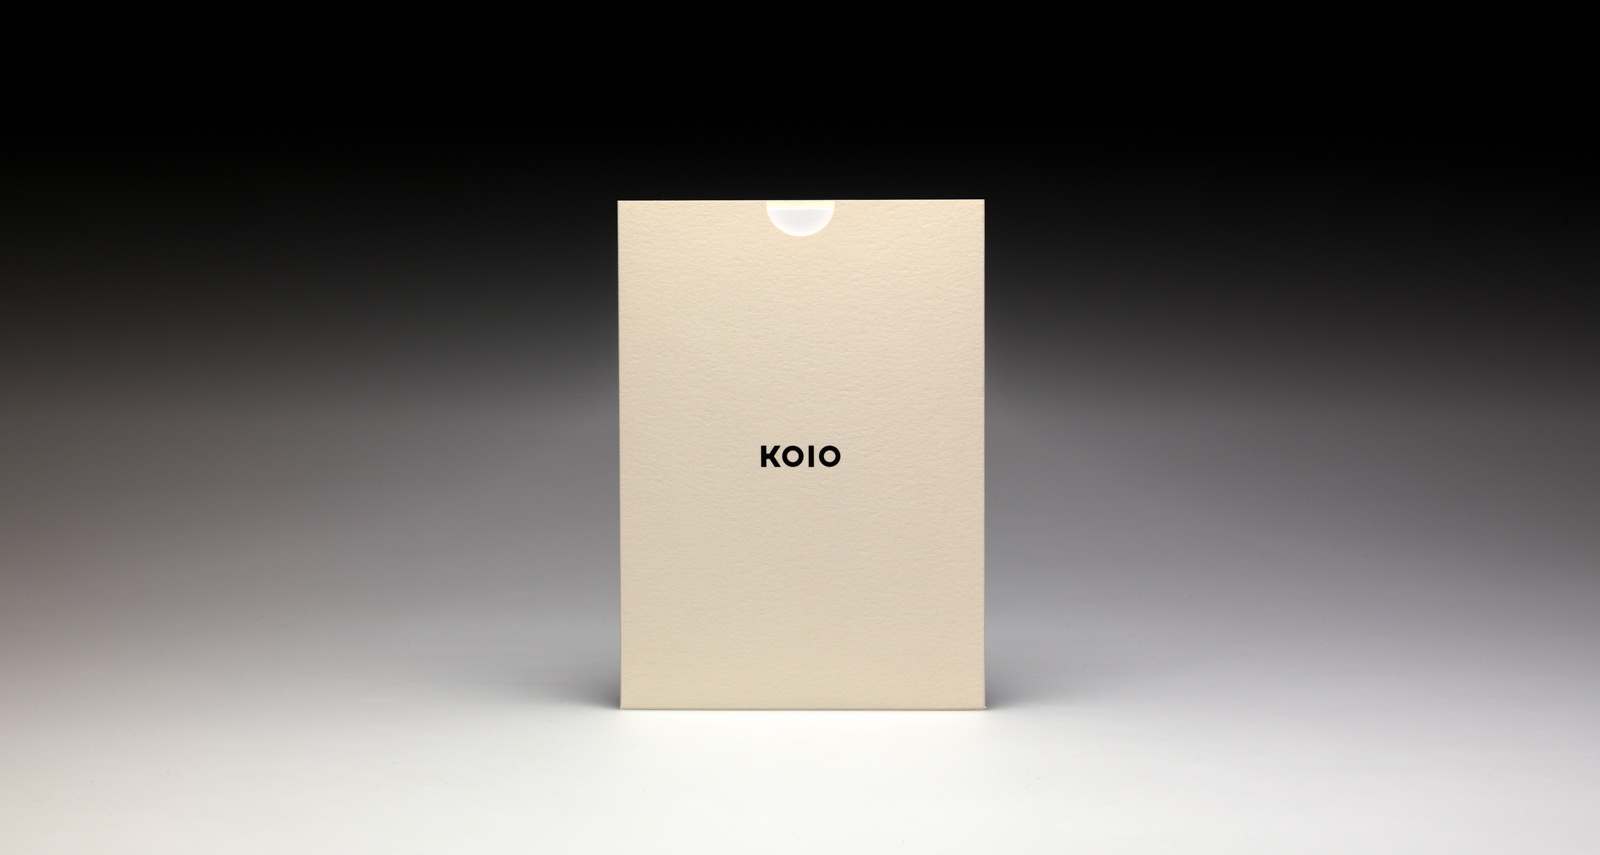 KOIO: Simple Techniques Combined to Make an Elegant Presentation